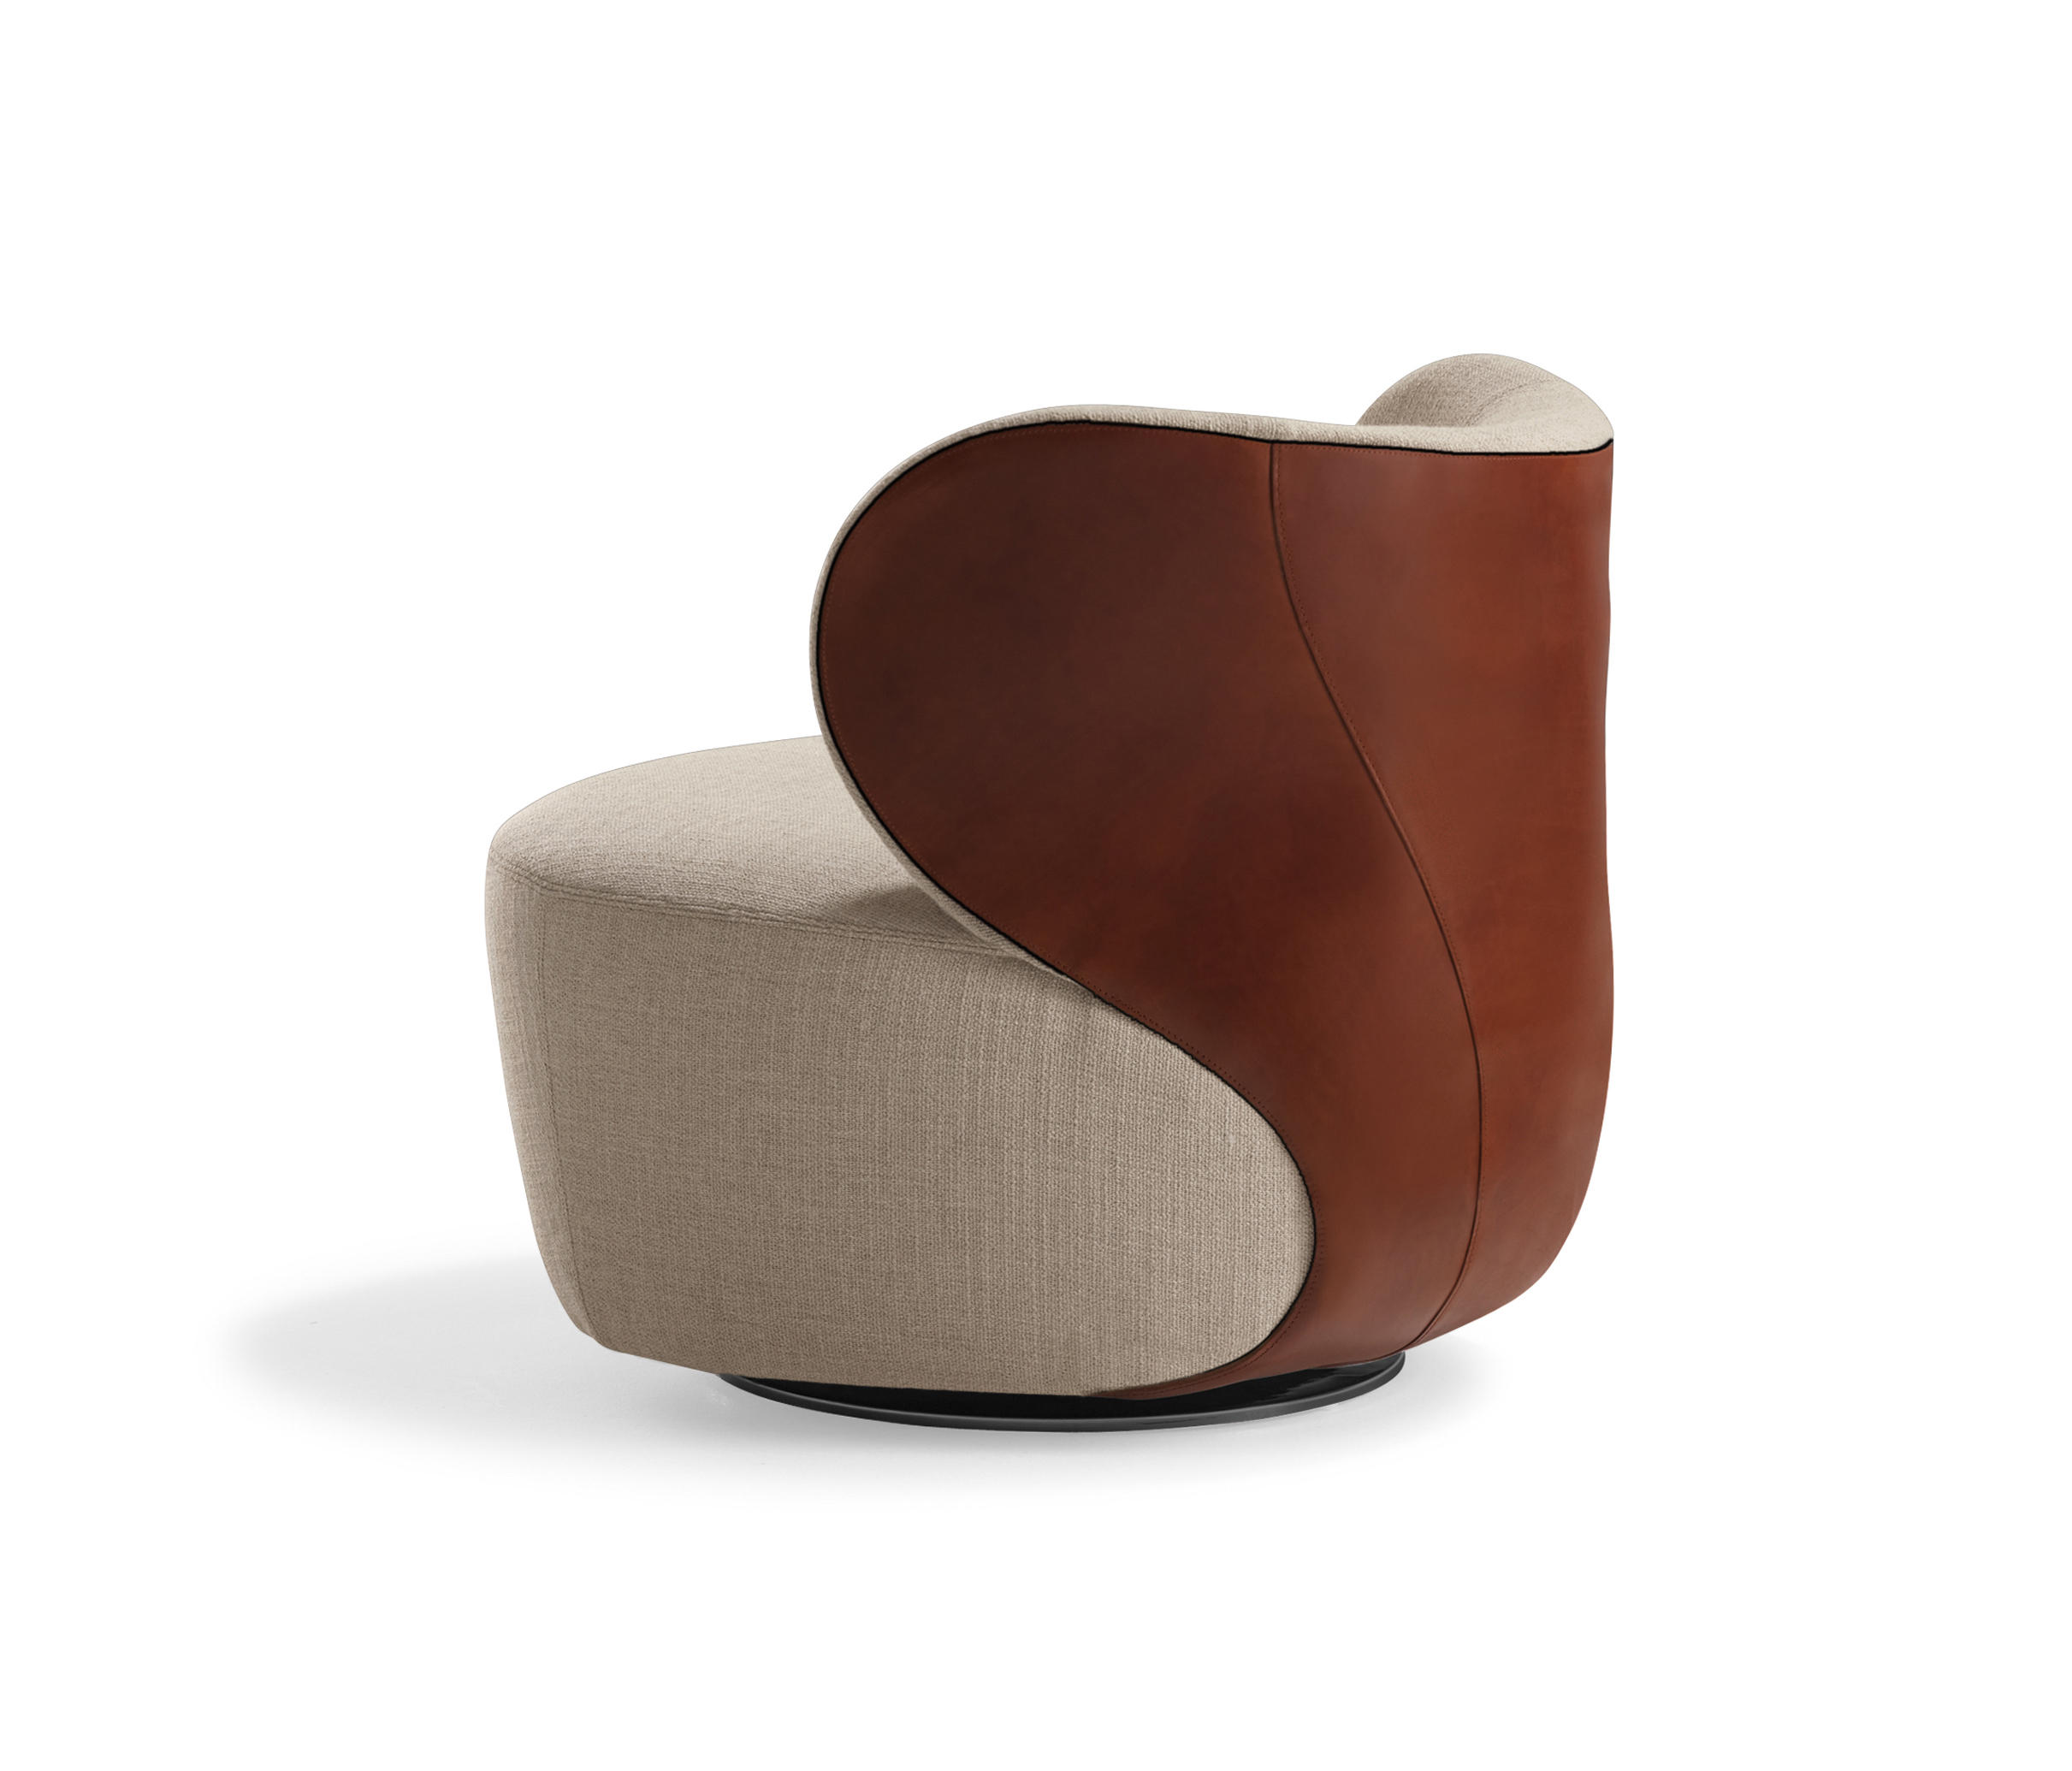 bao armchair lounge chairs from walter knoll architonic. Black Bedroom Furniture Sets. Home Design Ideas